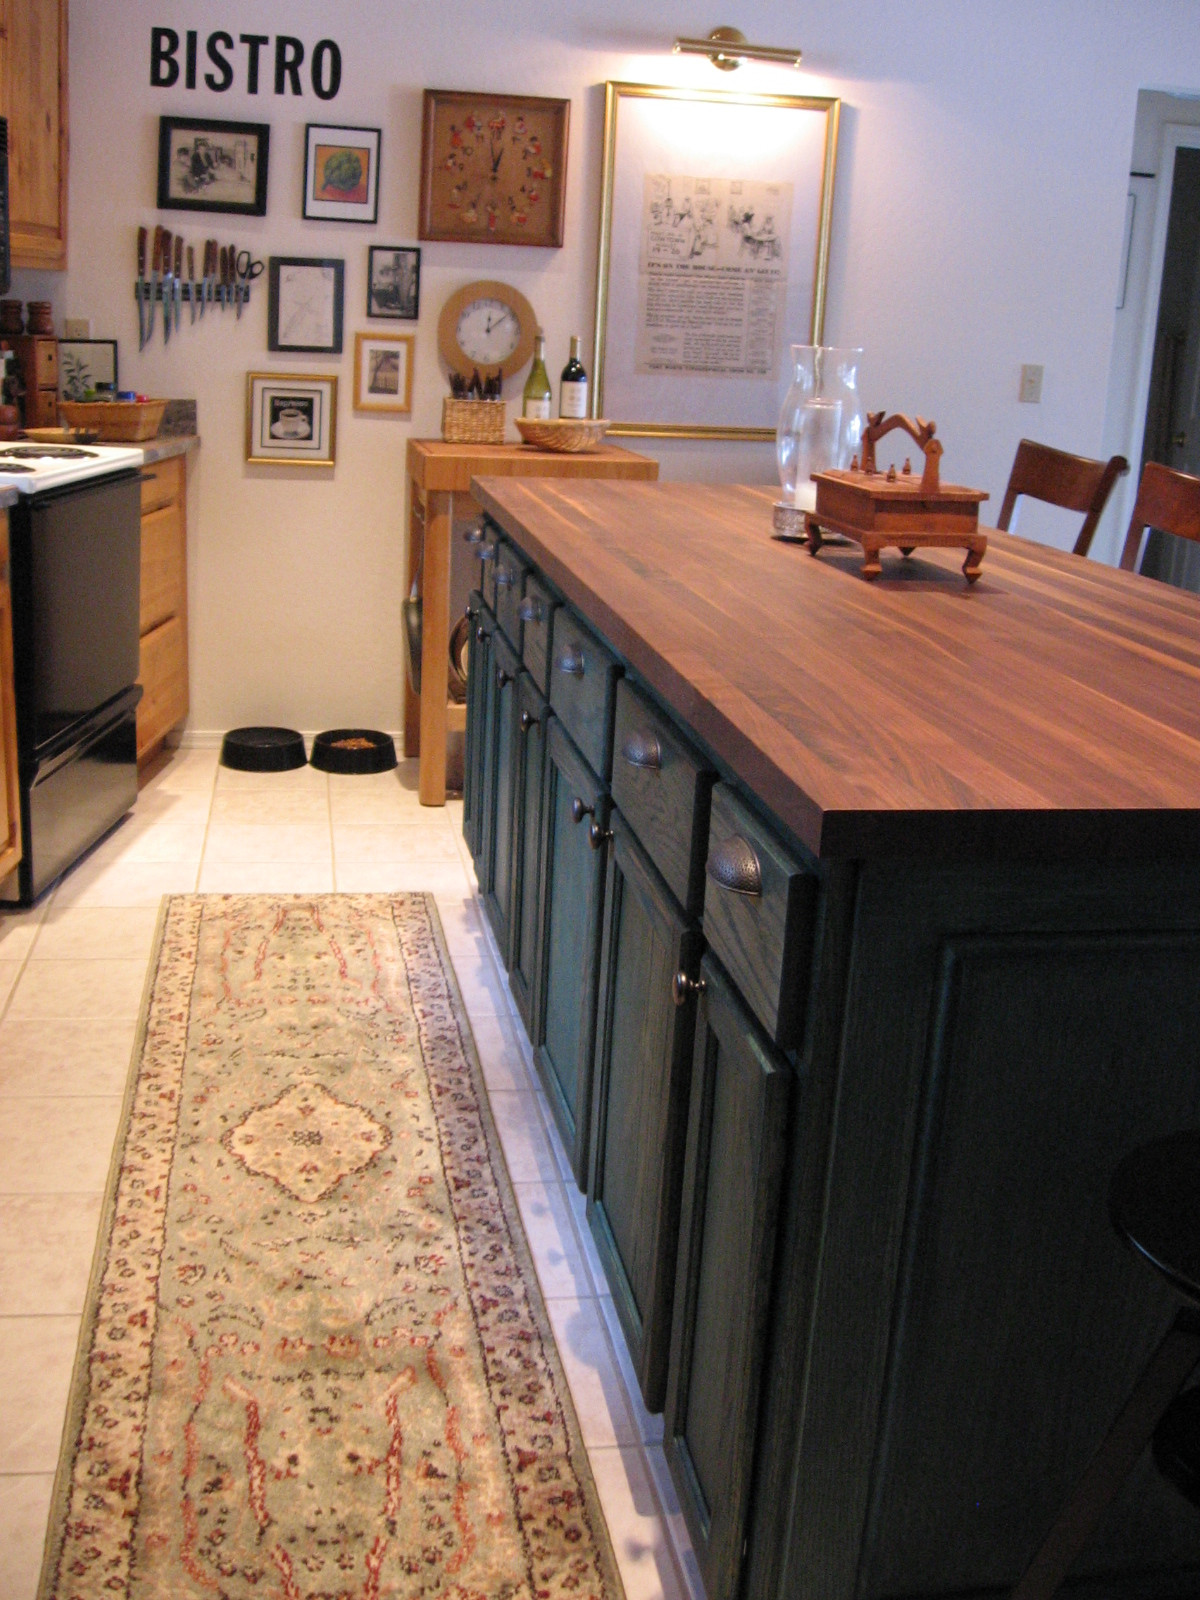 Best ideas about DIY Kitchen Island From Cabinets . Save or Pin Dusty Coyote DIY Kitchen Island Now.